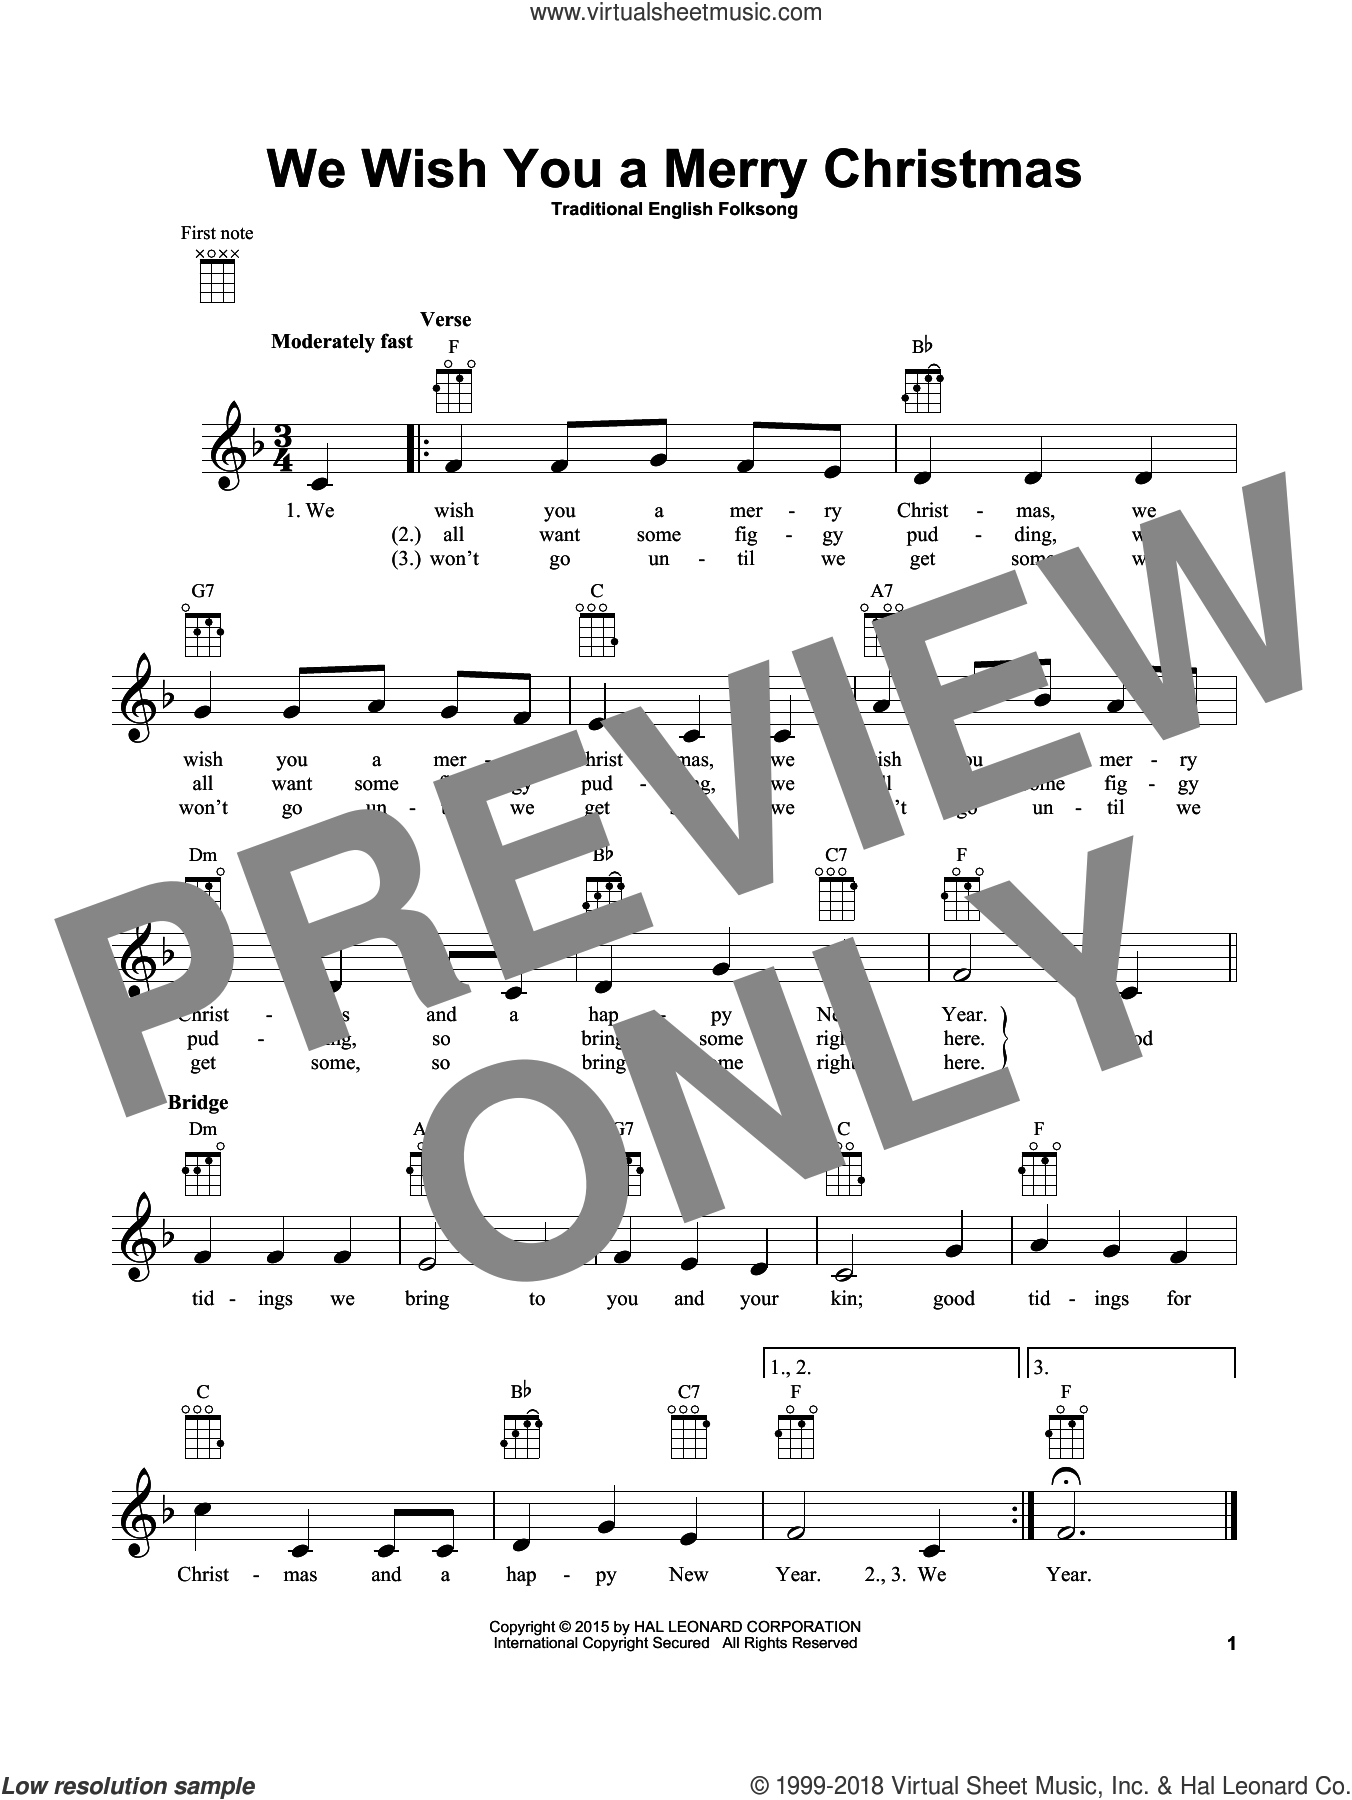 We Wish You A Merry Christmas sheet music for ukulele by Traditional English Folksong, intermediate skill level